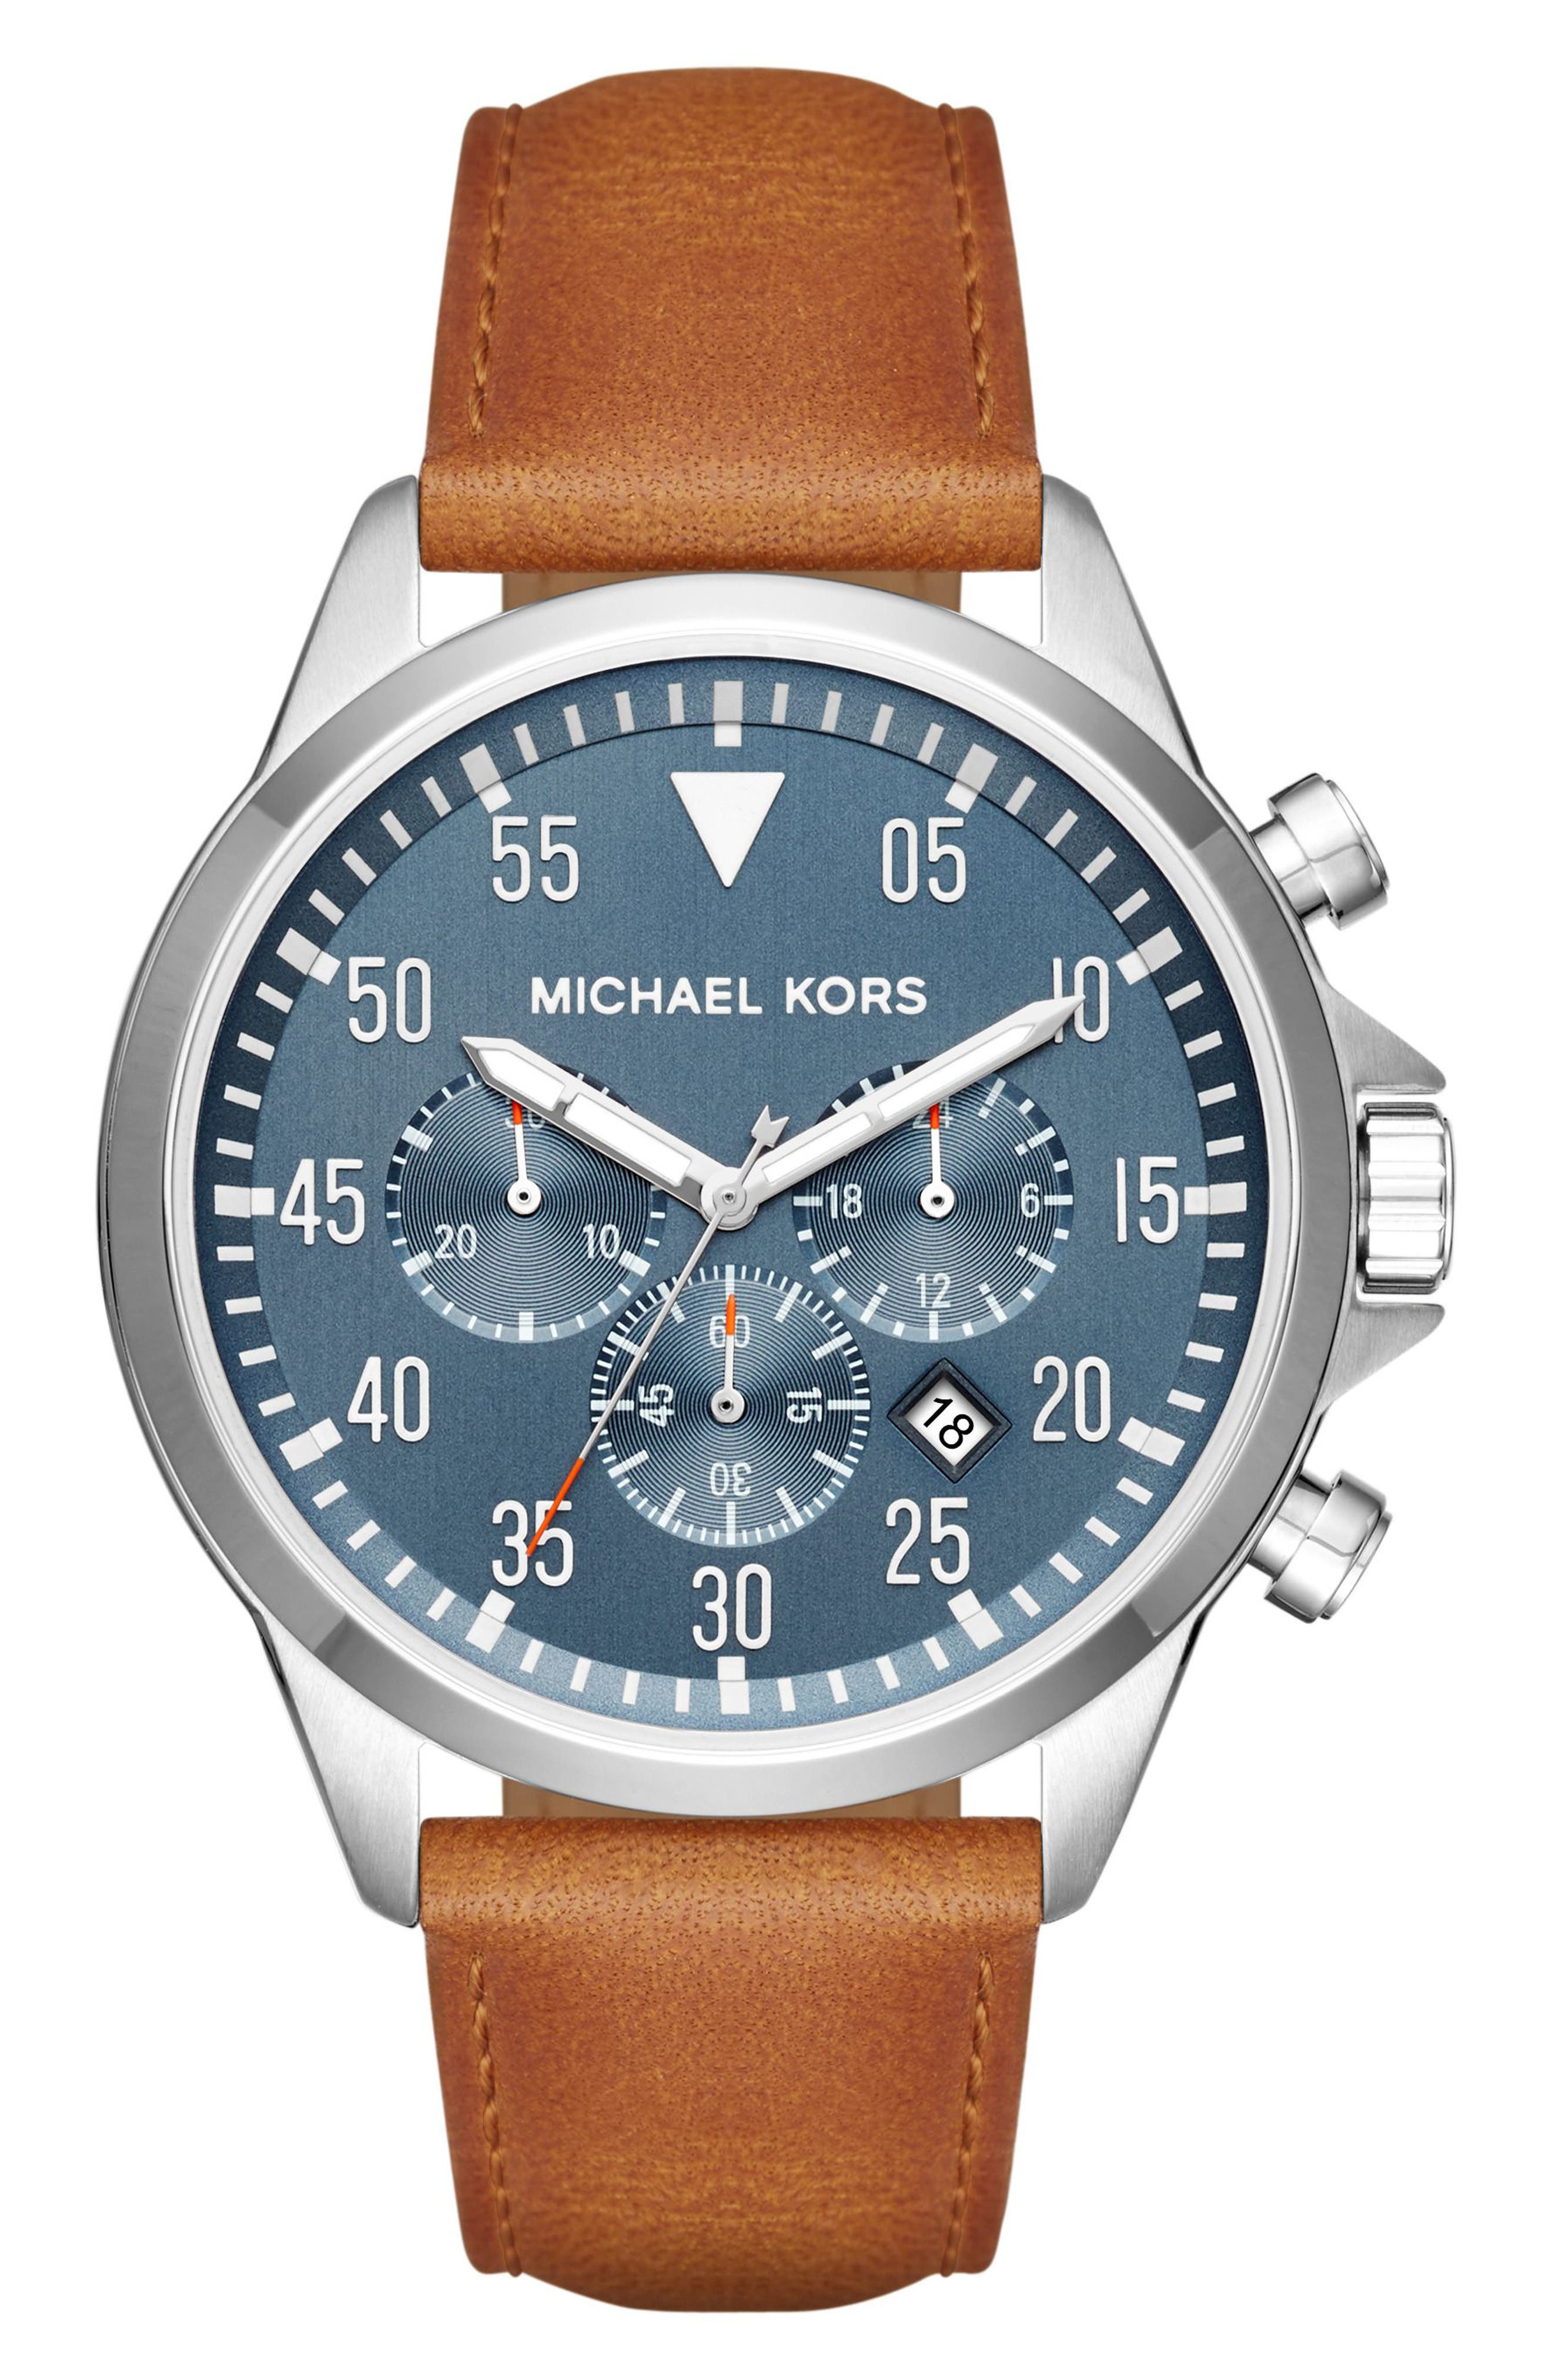 Main Image - Michael Kors 'Gage' Chronograph Leather Strap Watch, 45mm